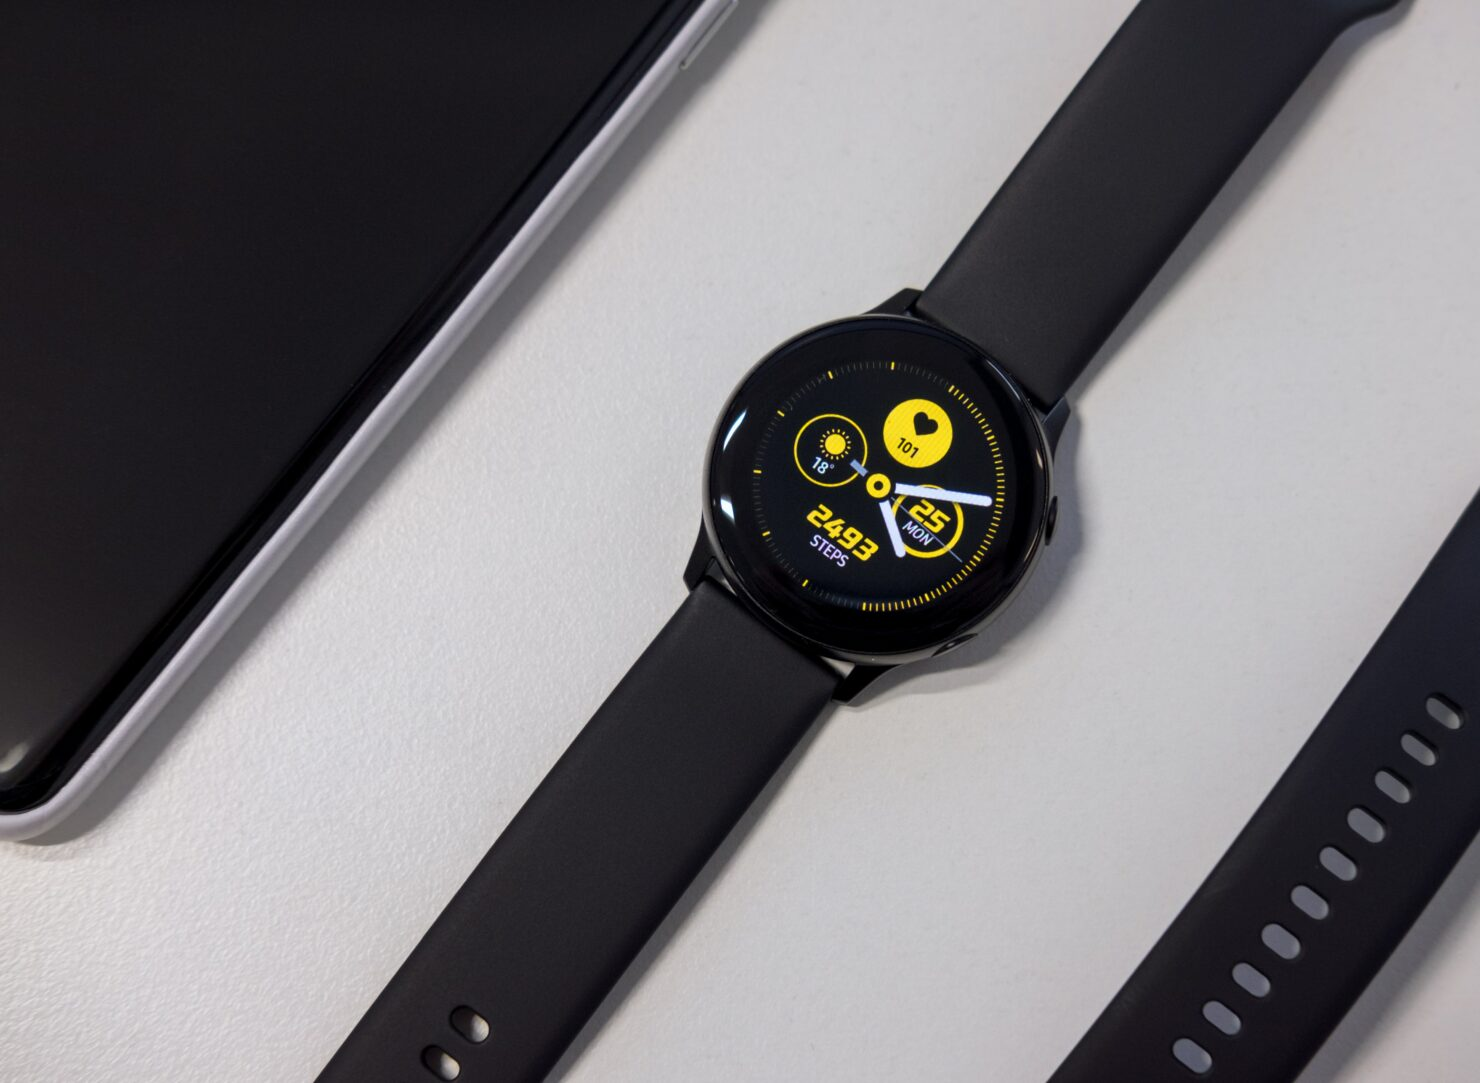 Galaxy Watch 4 Confirmed to Run Wear OS and One UI